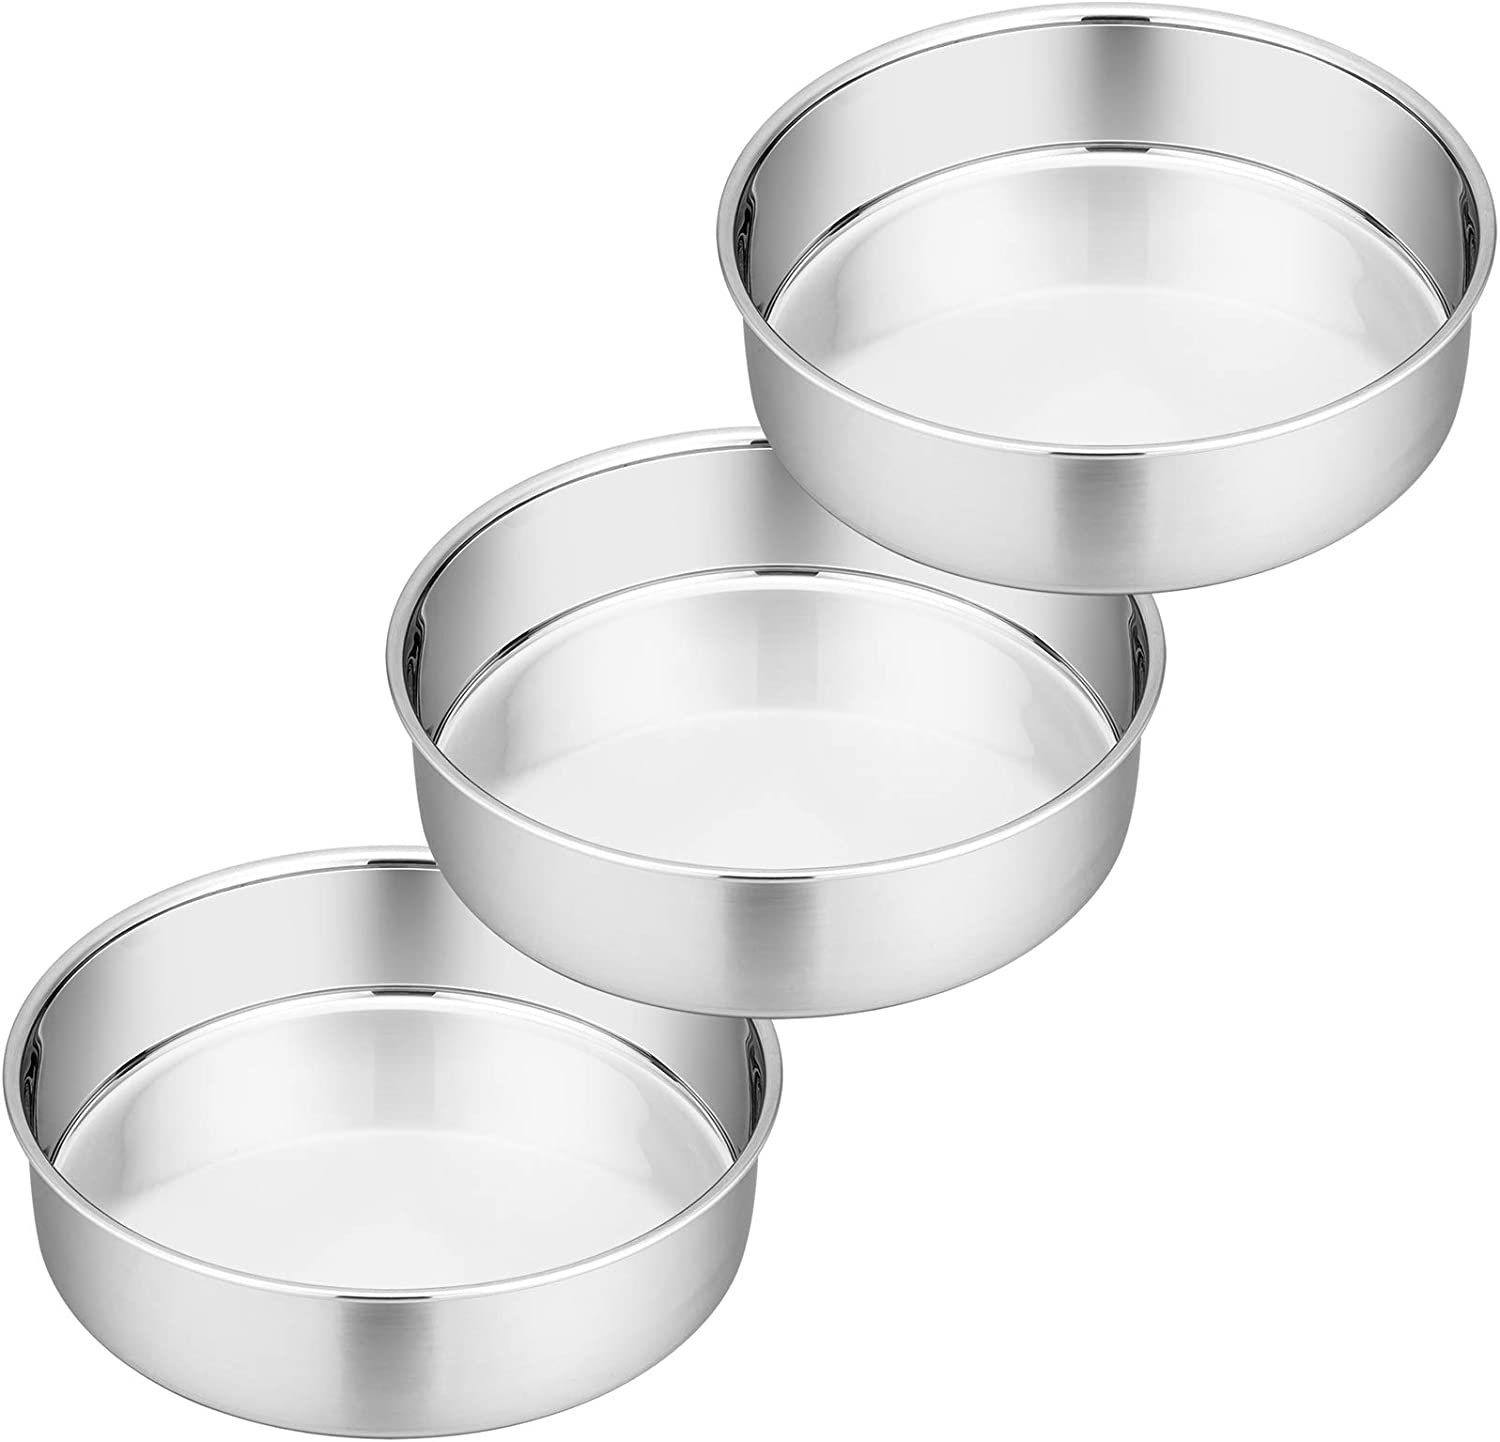 8 Inch Cake Pan Set, 3 Pcs P&P CHEF Round Baking Pans Stainless Steel LayerBirthday Wedding Cake Pans, Fit Oven / Pots / Pressure Cooker, Non Toxic & Heavy Duty, Dishwasher Safe